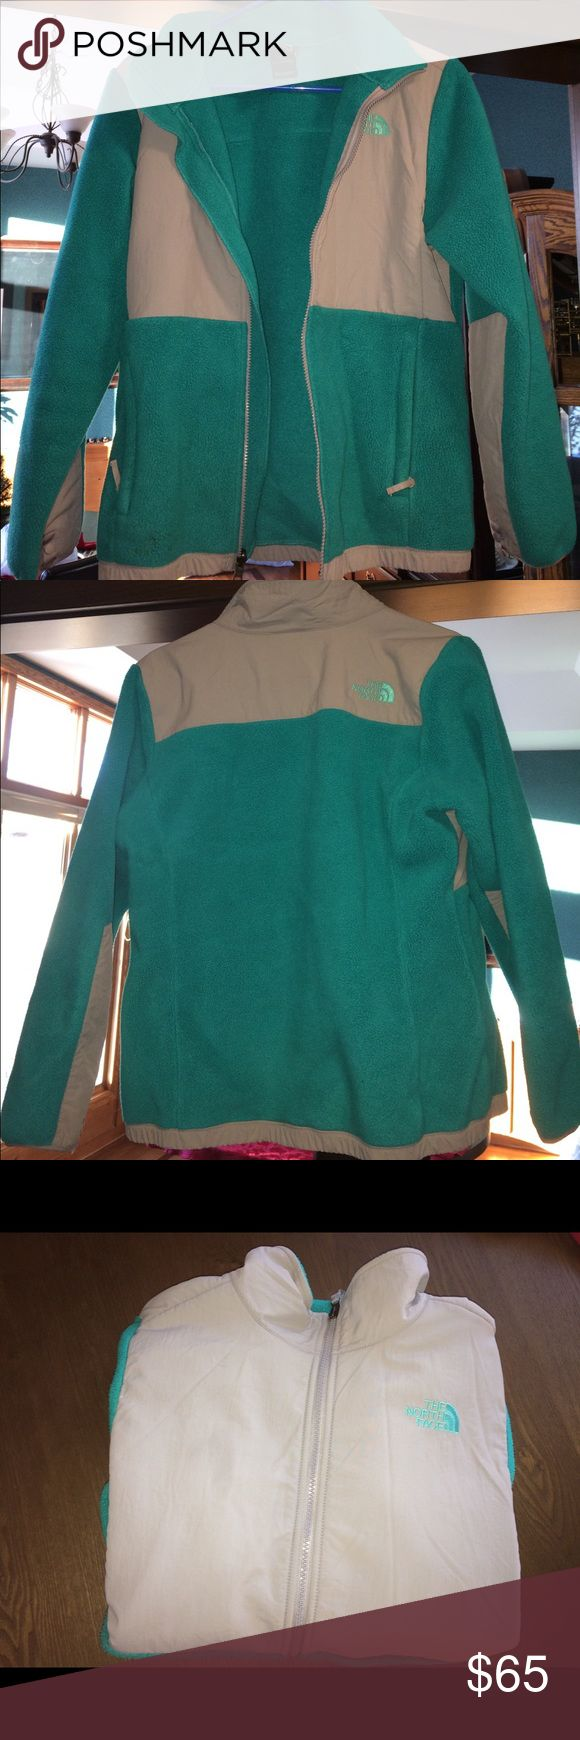 Girls Turquoise North Face Jacket Girls North Face Jacket XL (18). In great condition!! Make an offer if interested!! The North Face Jackets & Coats